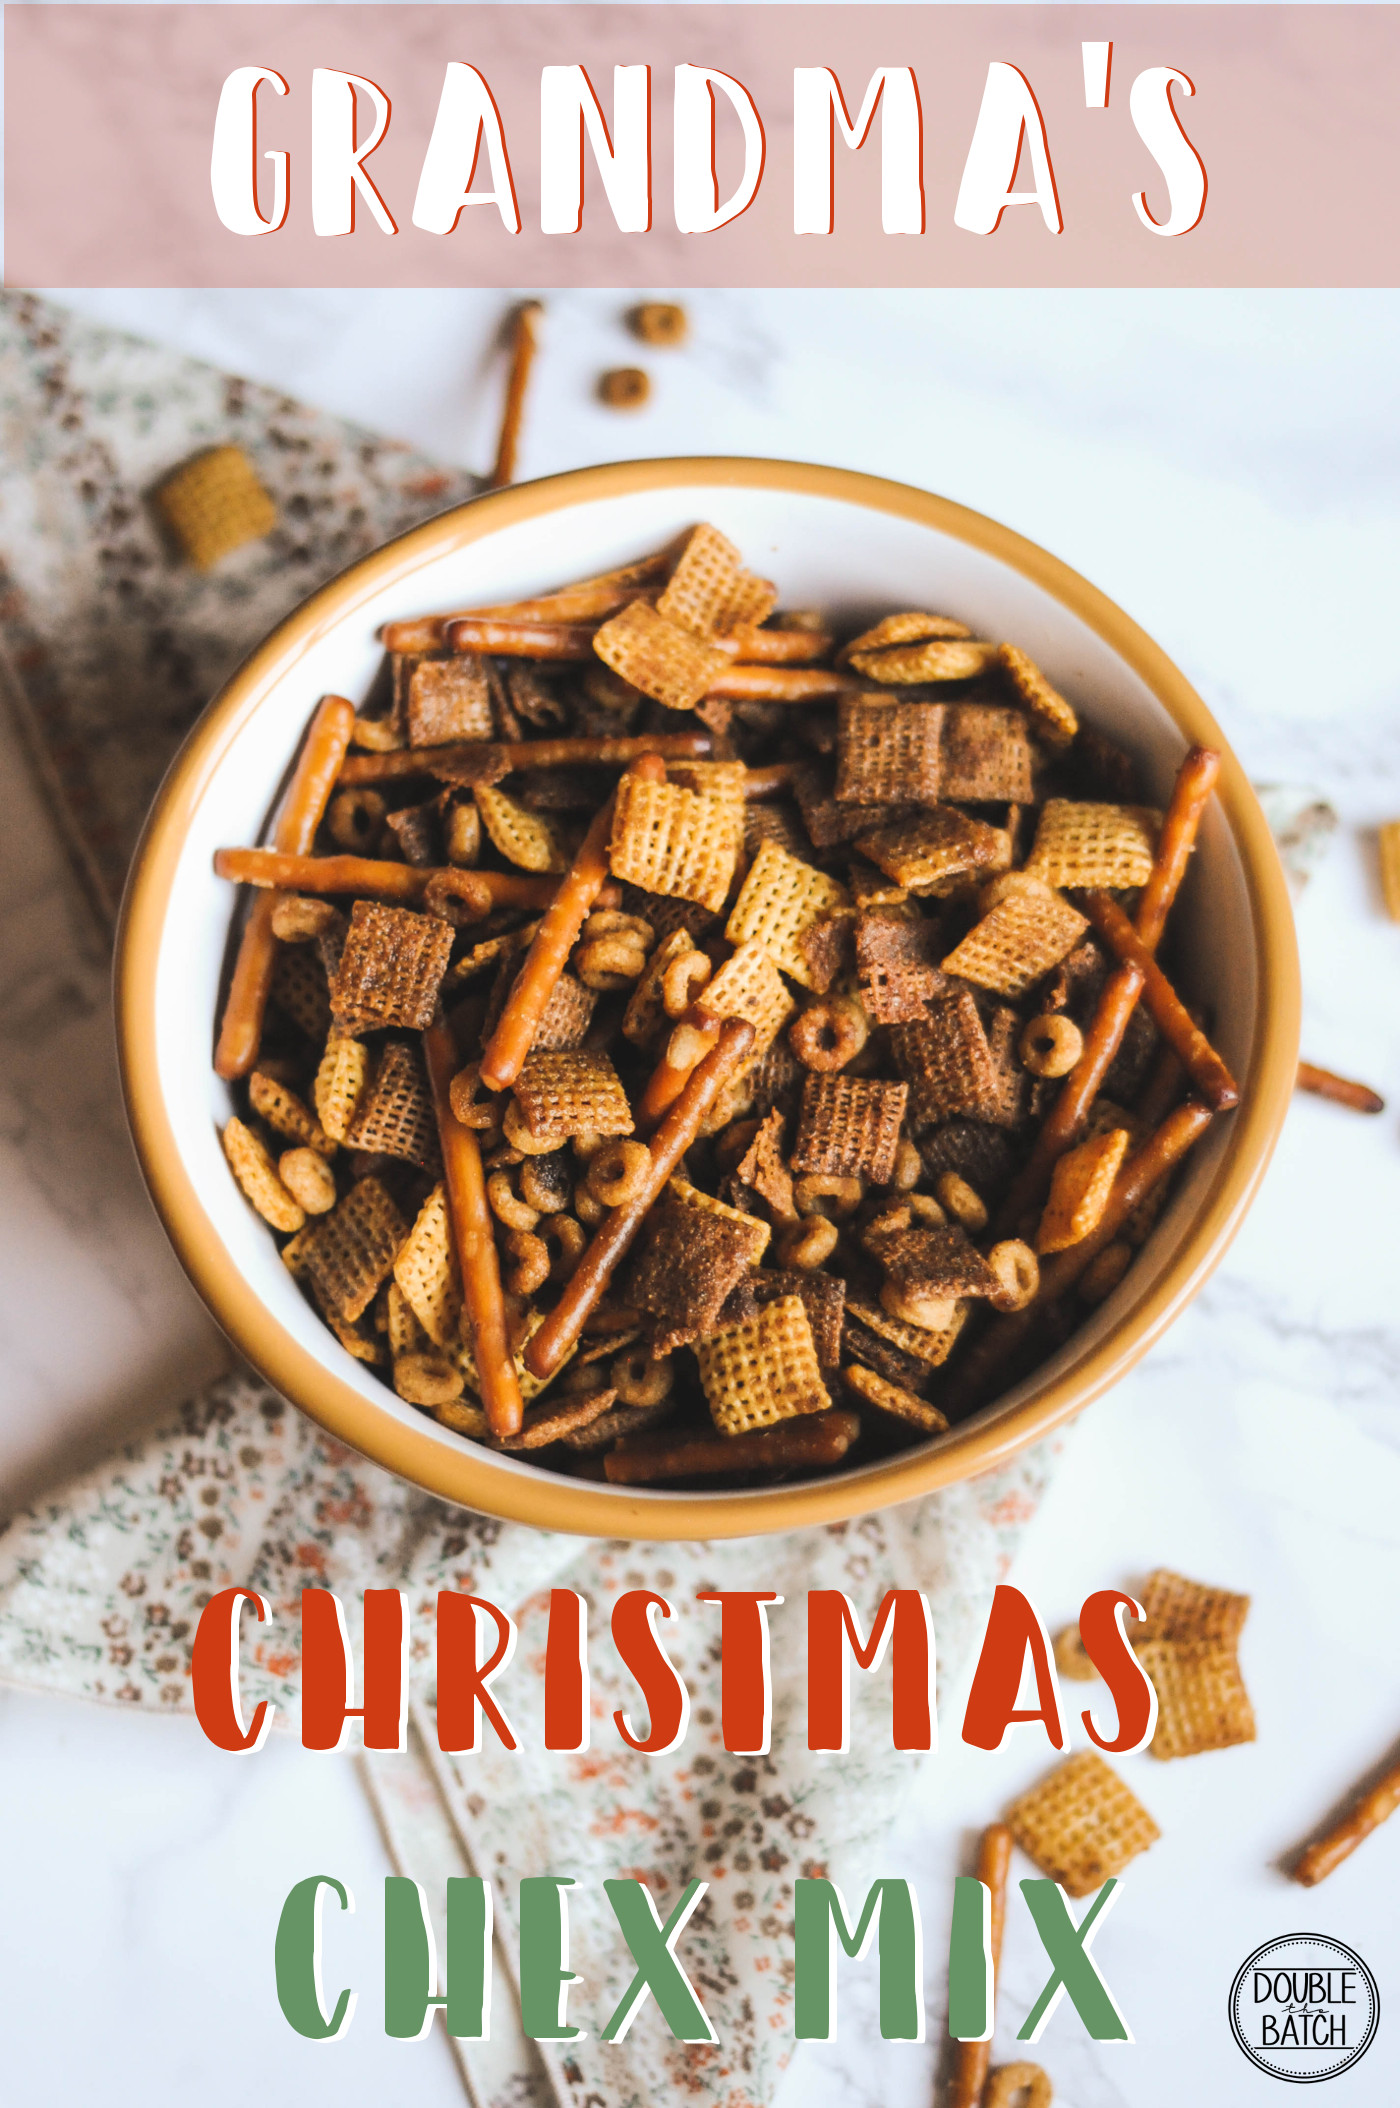 Grandma's Christmas Chex Mix